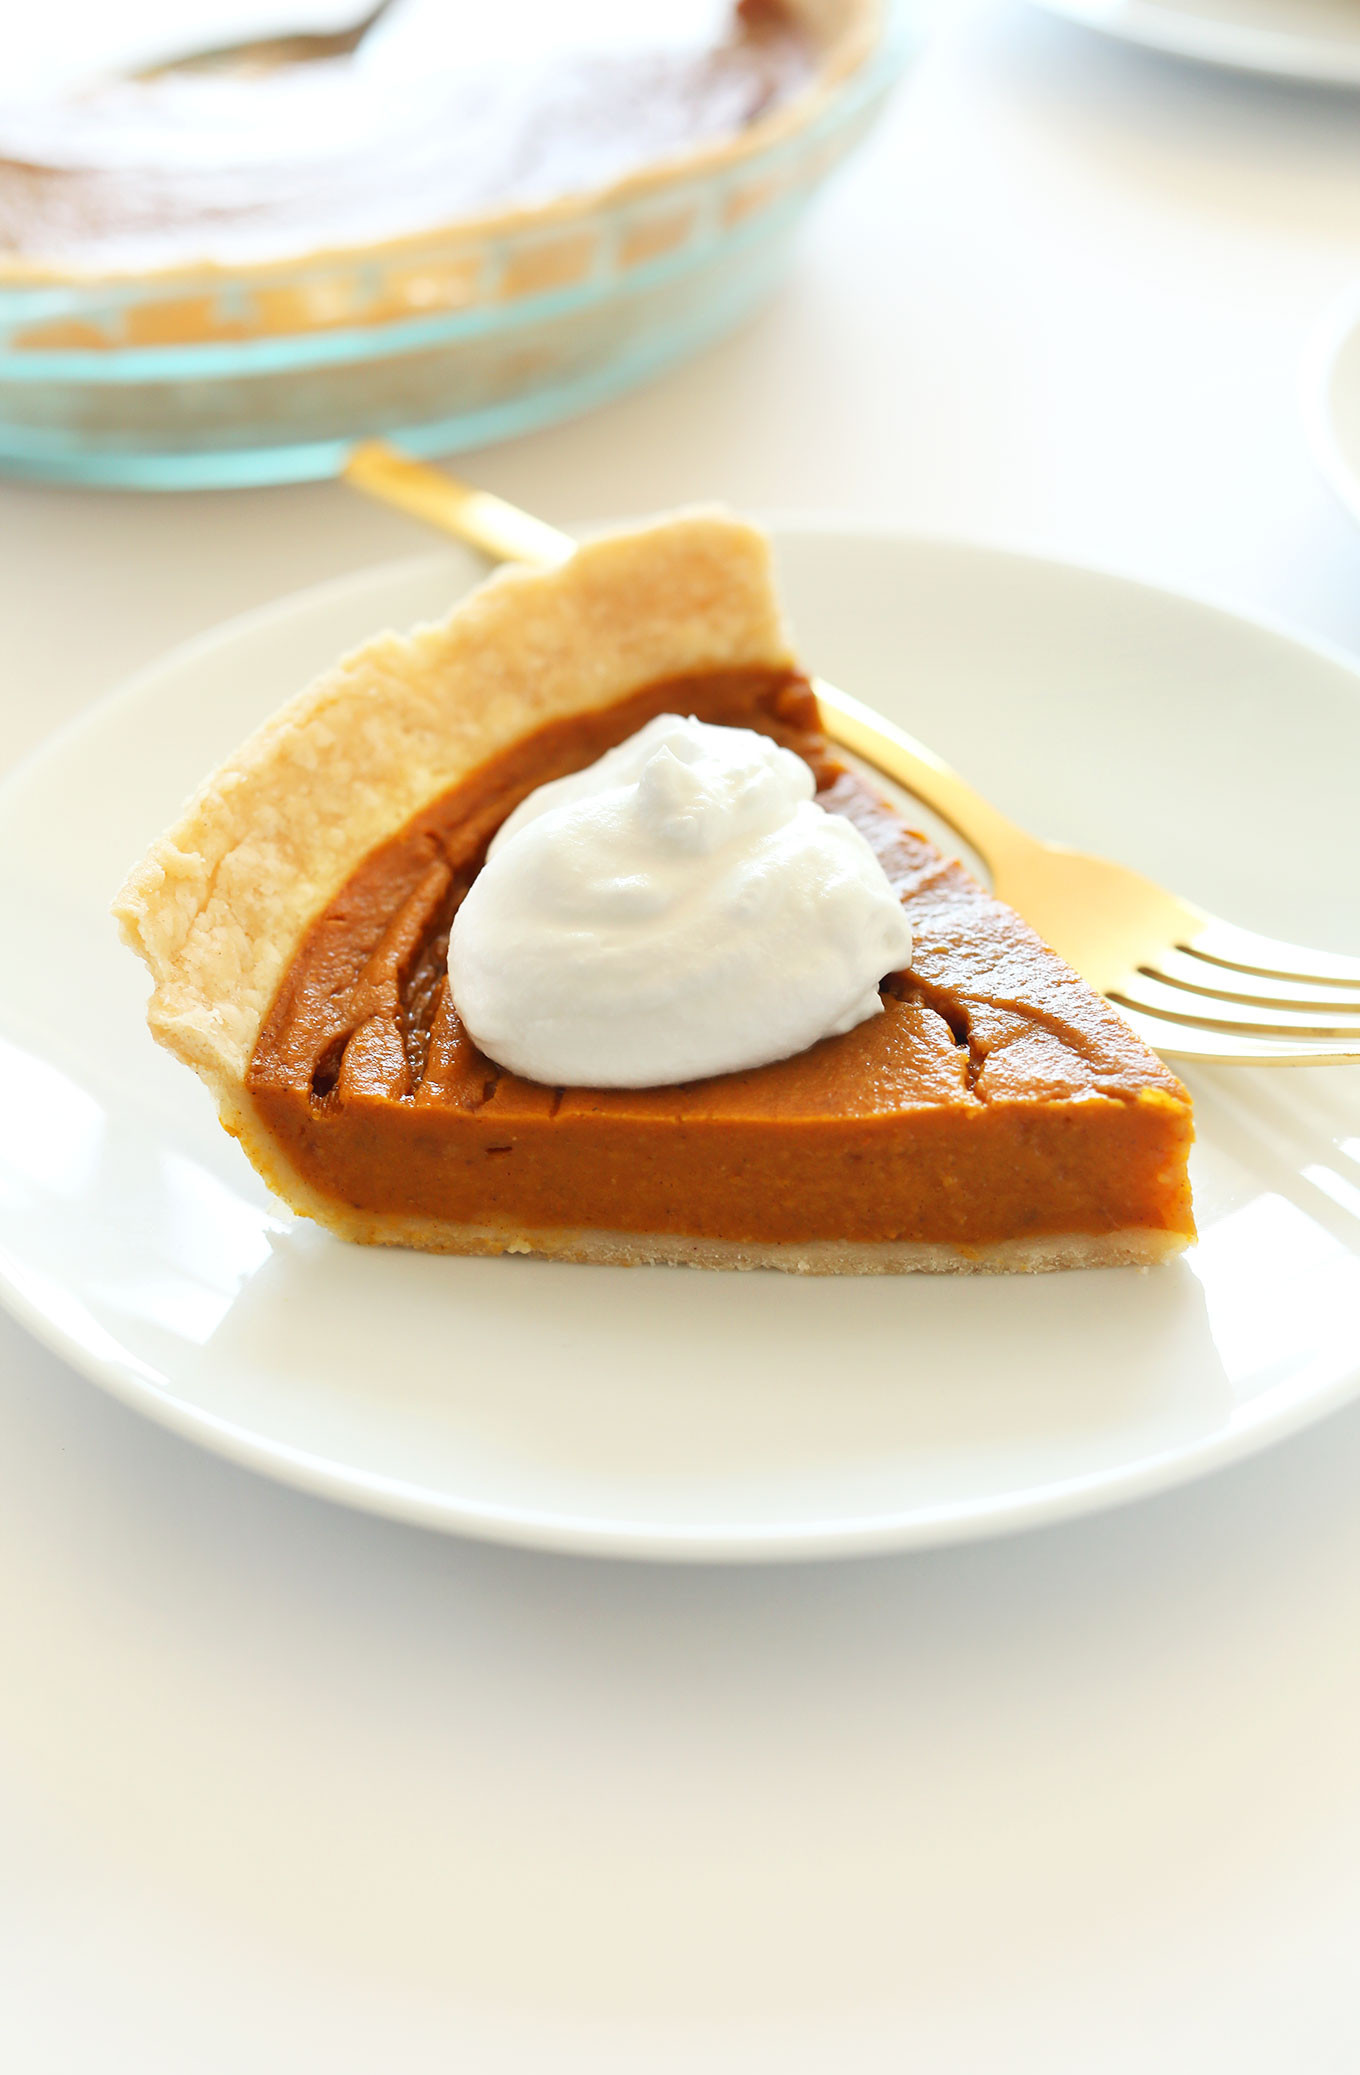 Gluten Free Pumpkin Pie  7 Delicious Pie Recipes for Your Gluten Free Holiday Guests